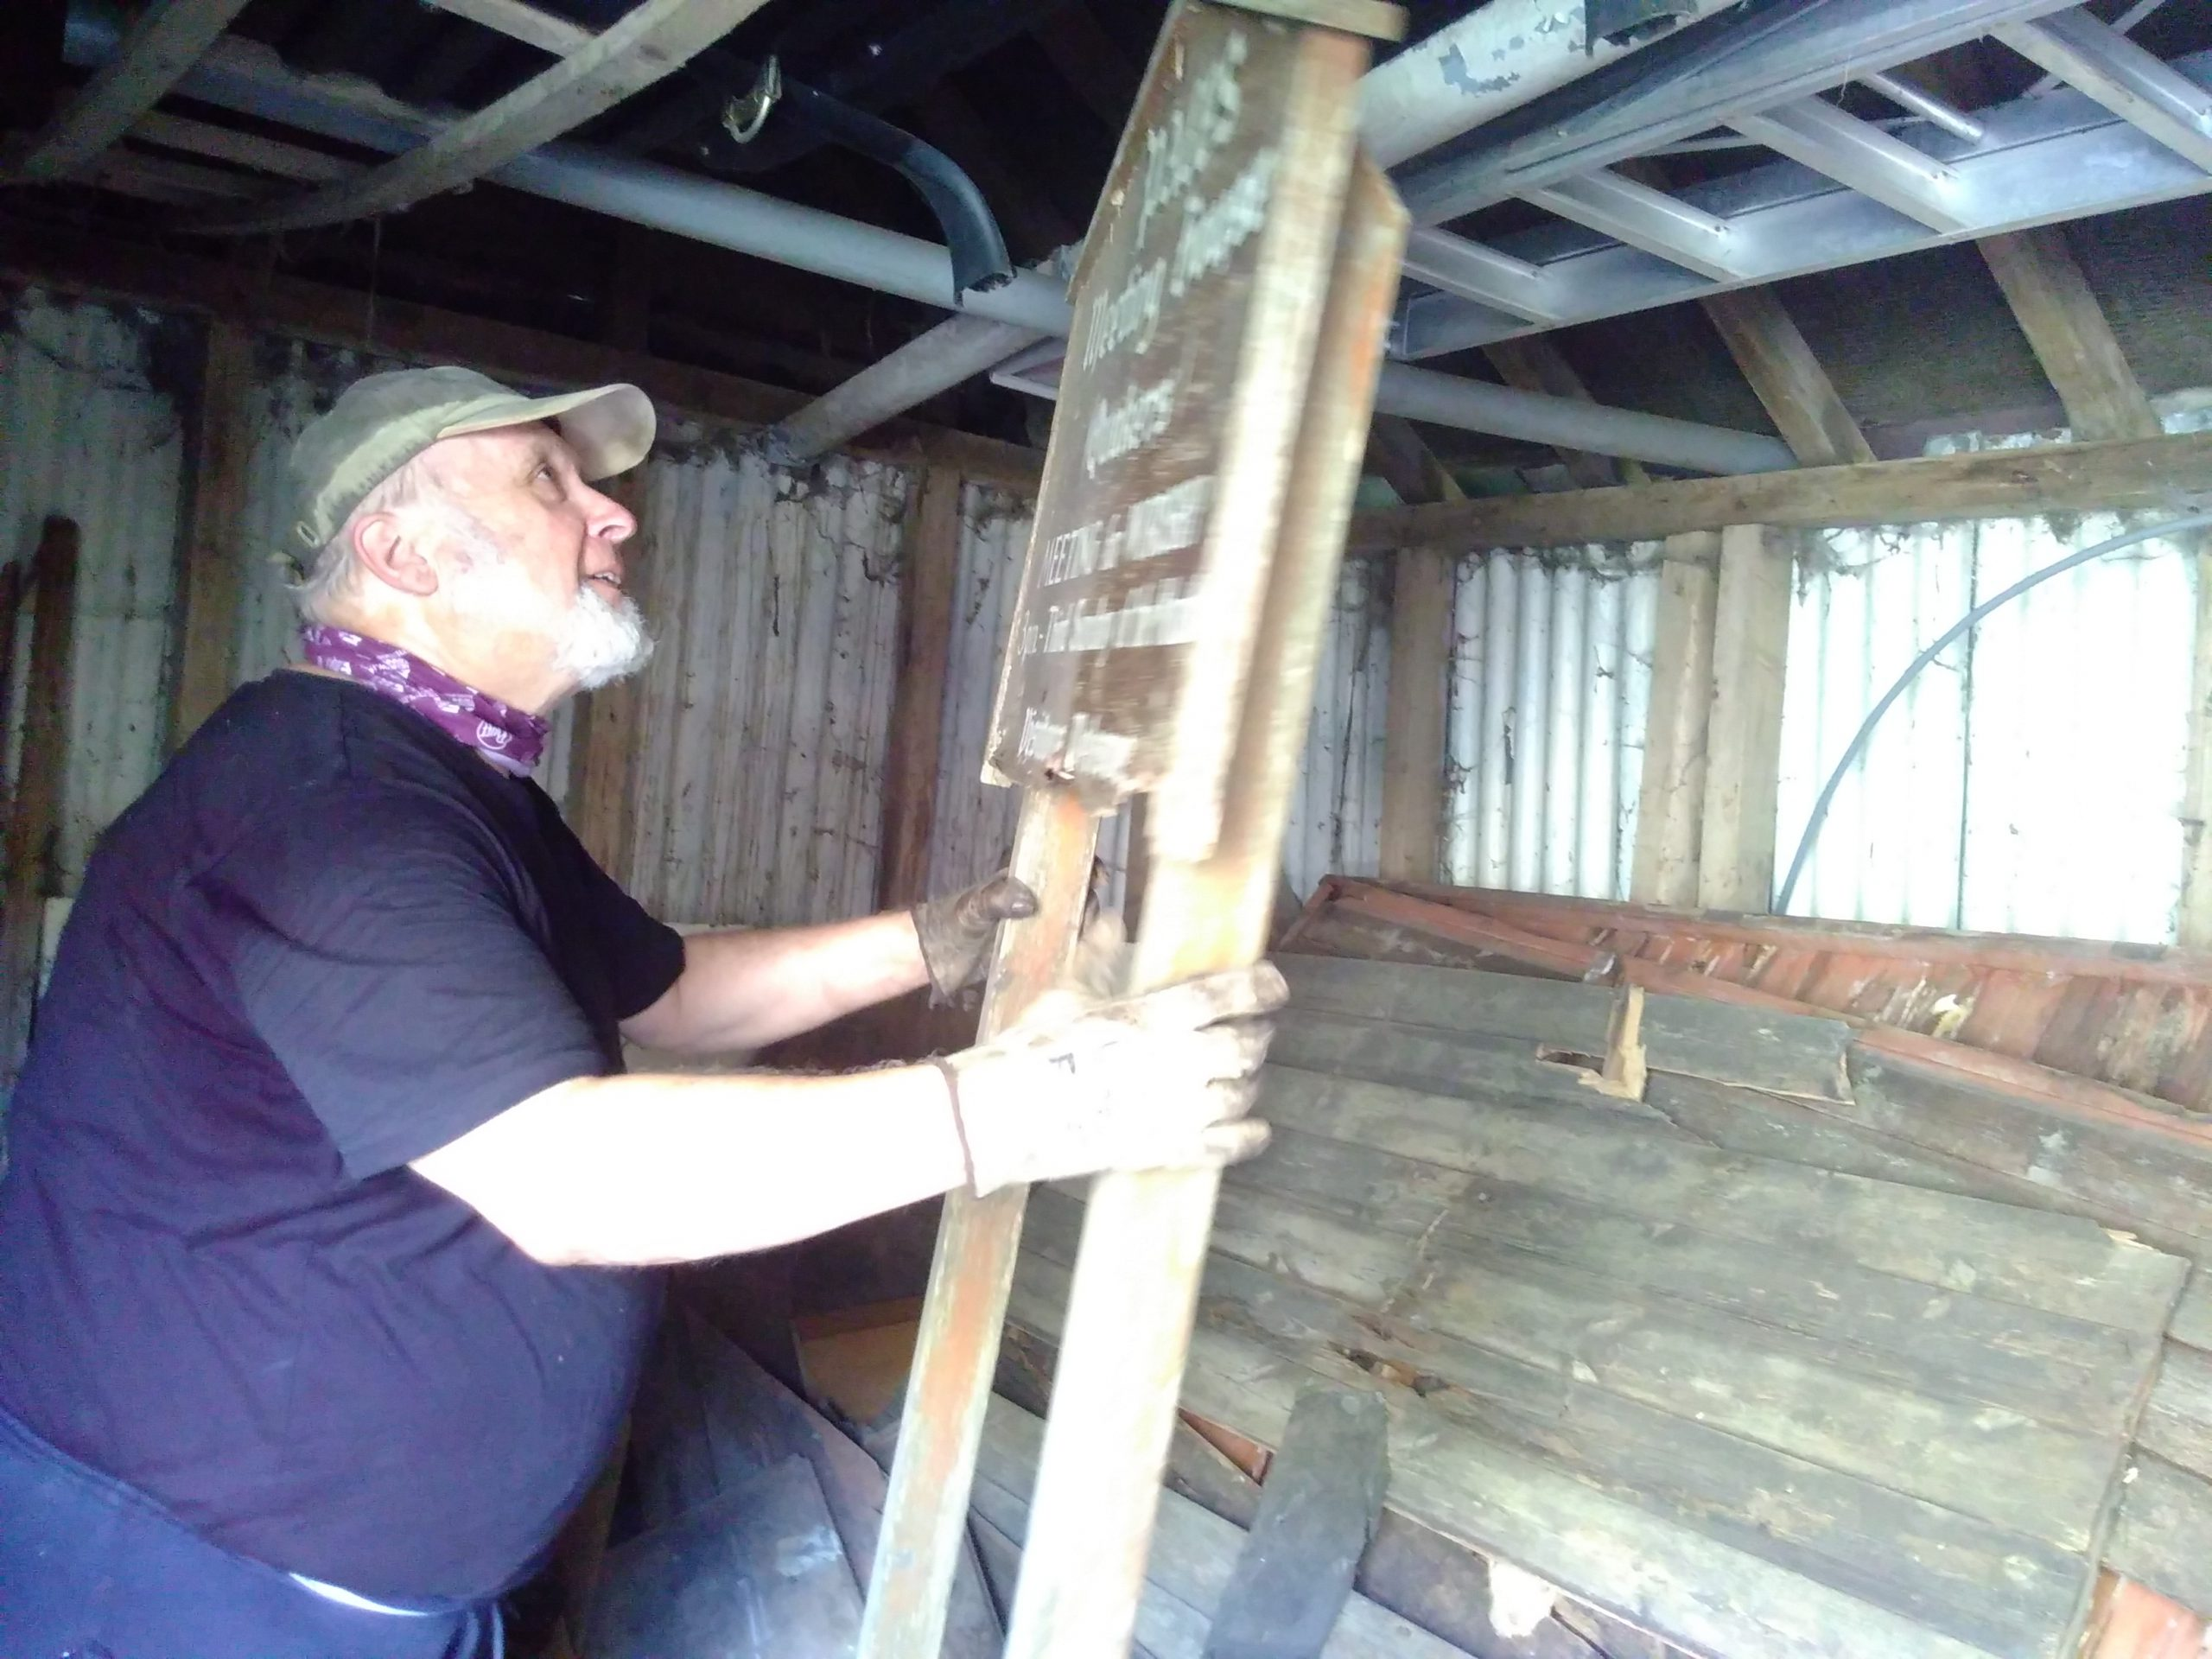 A man is picking up a large sign. The words 'The Pales' are just visible in the sign. It is inside a shed with wood stacked in the background.